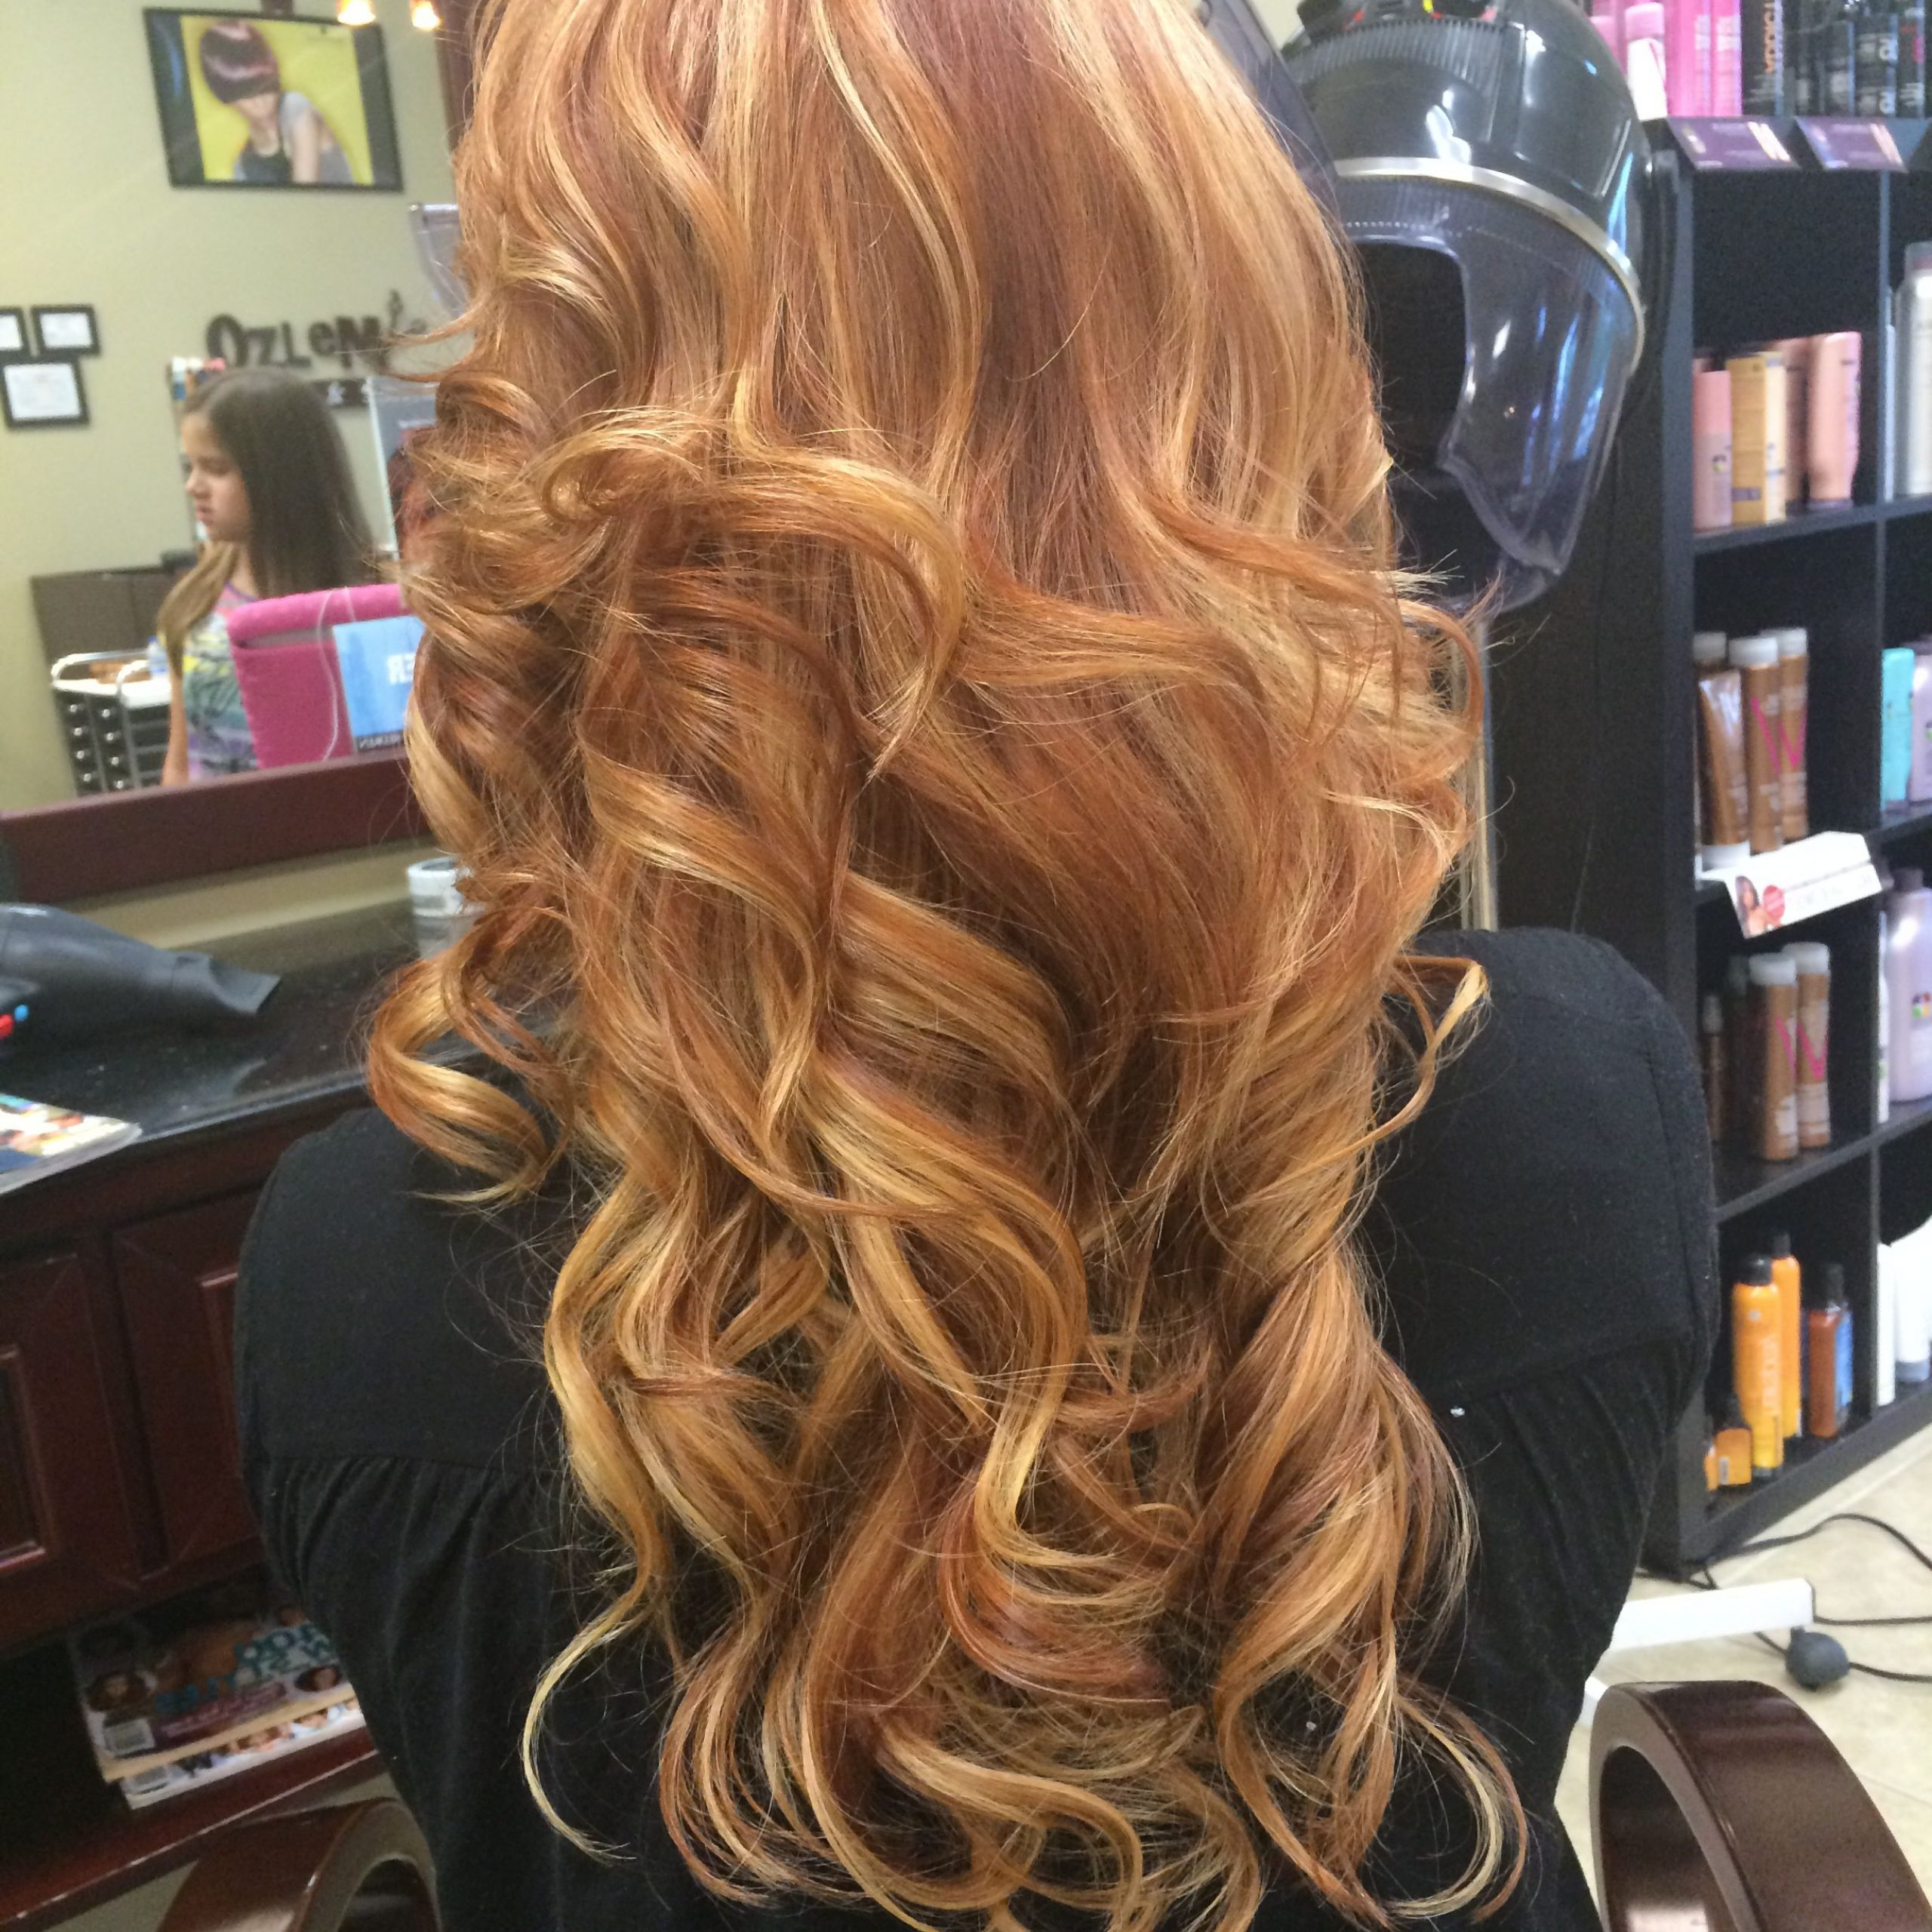 Strawberry Blonde, Long Layers, Curls, Red Hair Regarding Marsala To Strawberry Blonde Ombre Hairstyles (View 2 of 20)